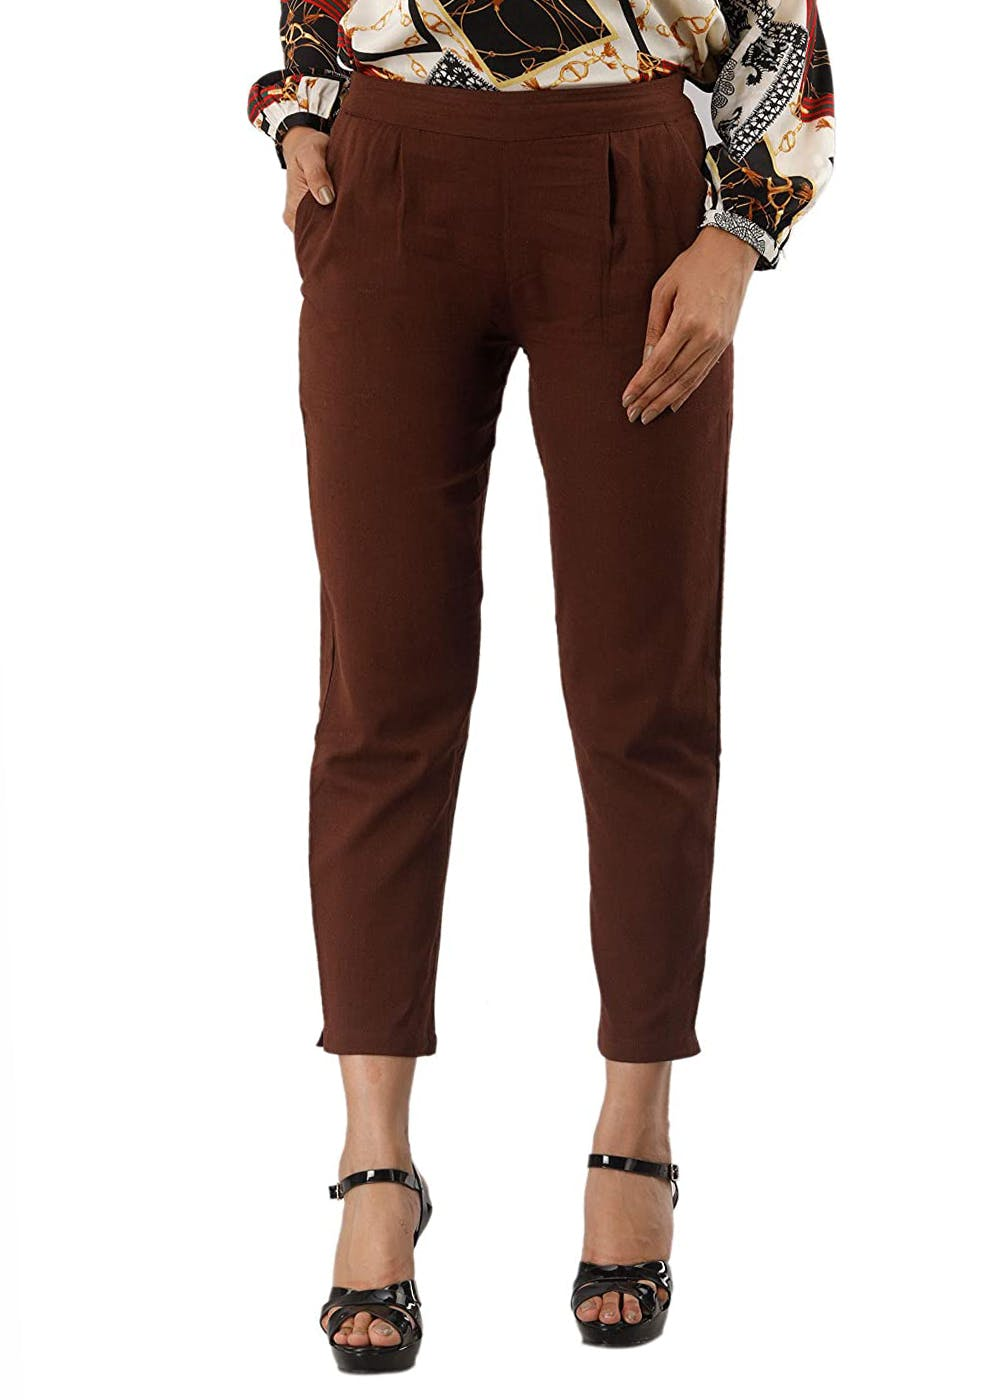 Brown Ankle Slit Details Straight Rayon Pants